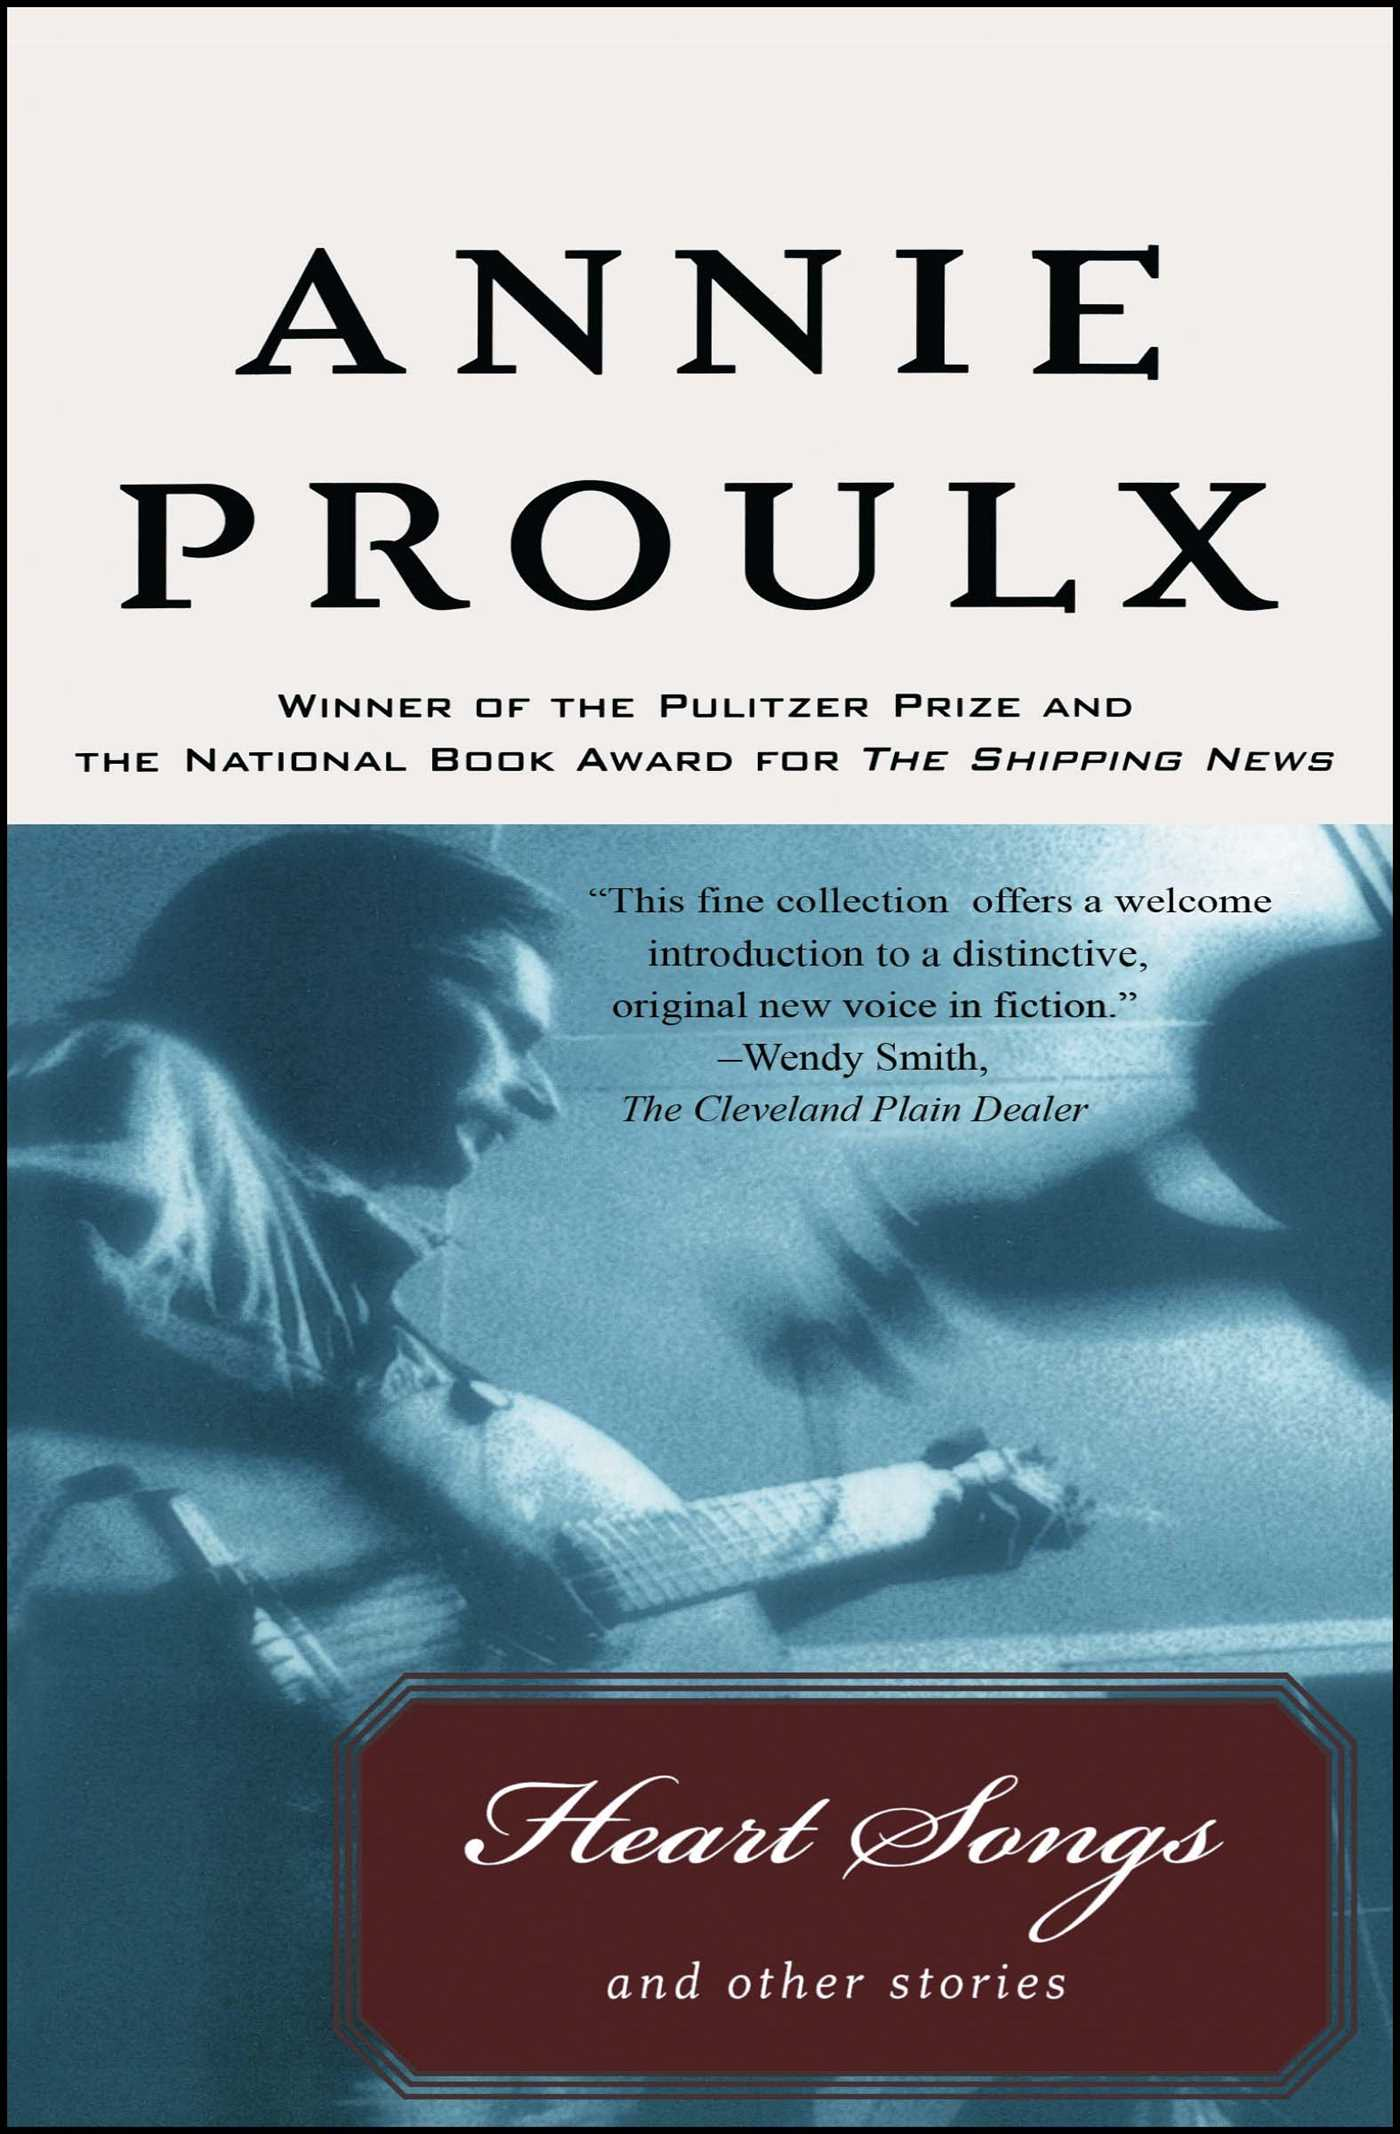 Heart Songs and Other Stories | Book by Annie Proulx